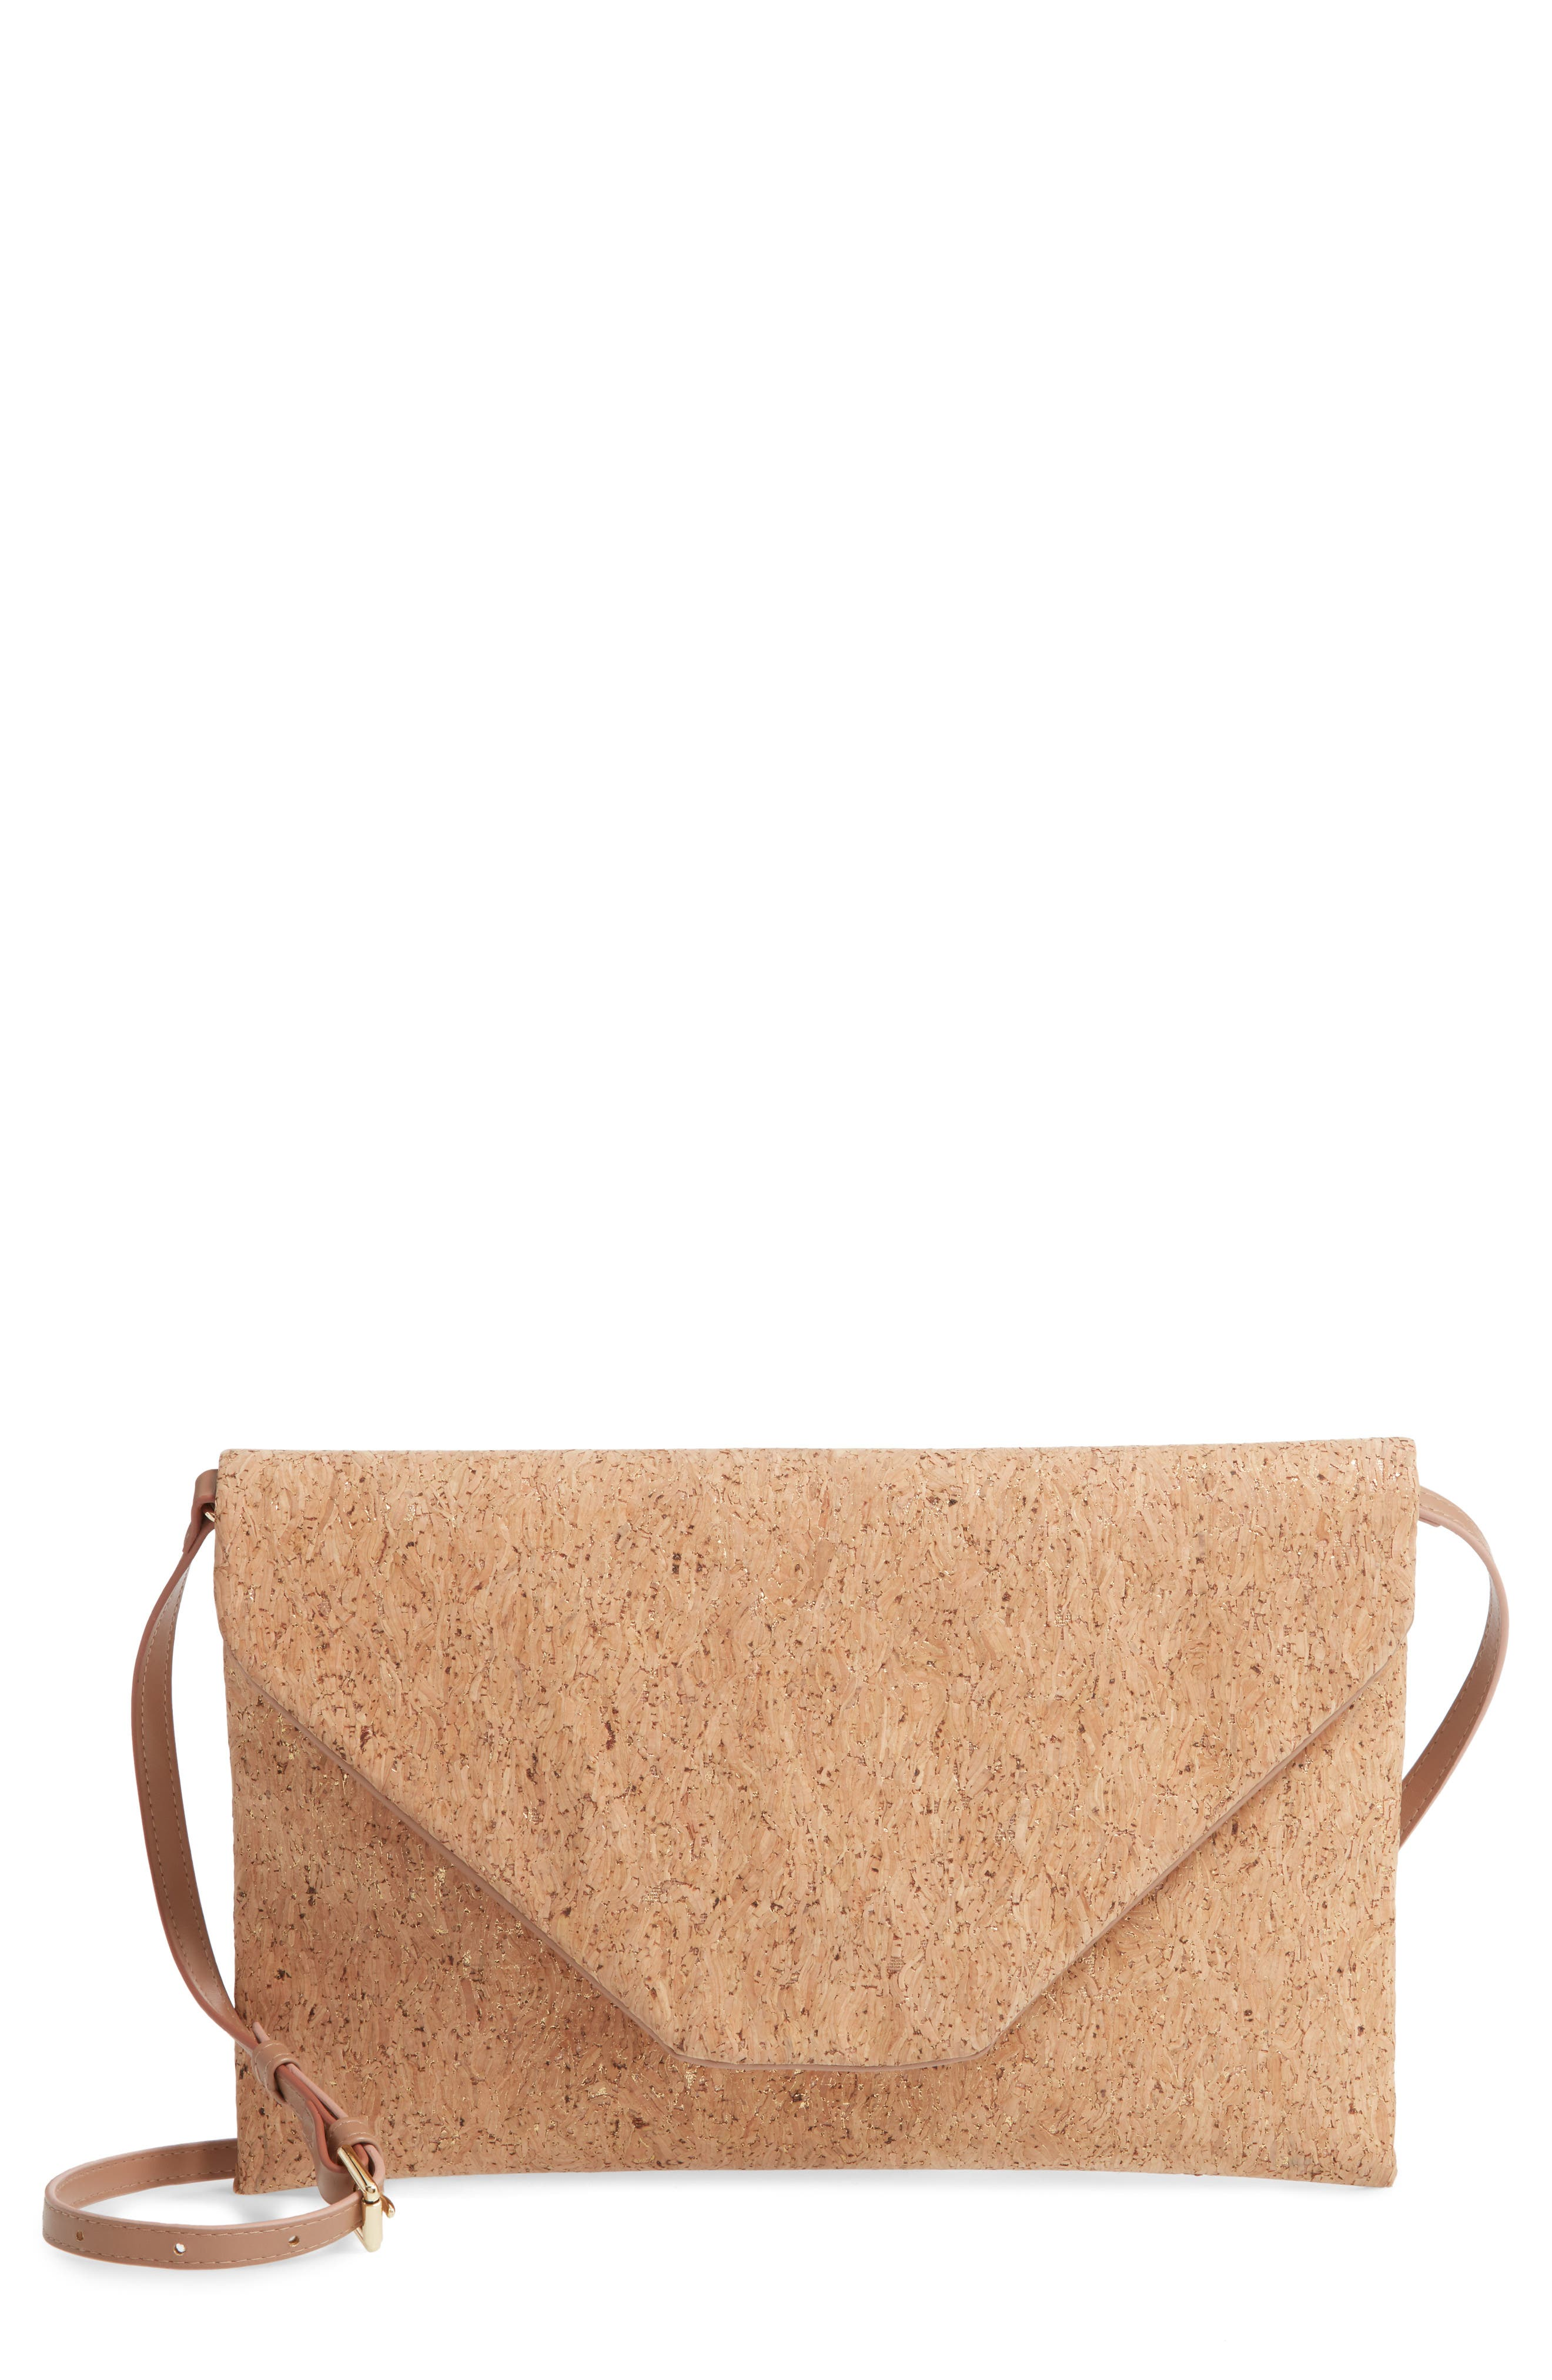 A naturally chic accessory looks so fresh right now, like this shimmery cork envelope bag that can be carried as a clutch or slung over the shoulder. Style Name: Nordstrom Envelope Cork Shoulder Bag. Style Number: 5960087. Available in stores.